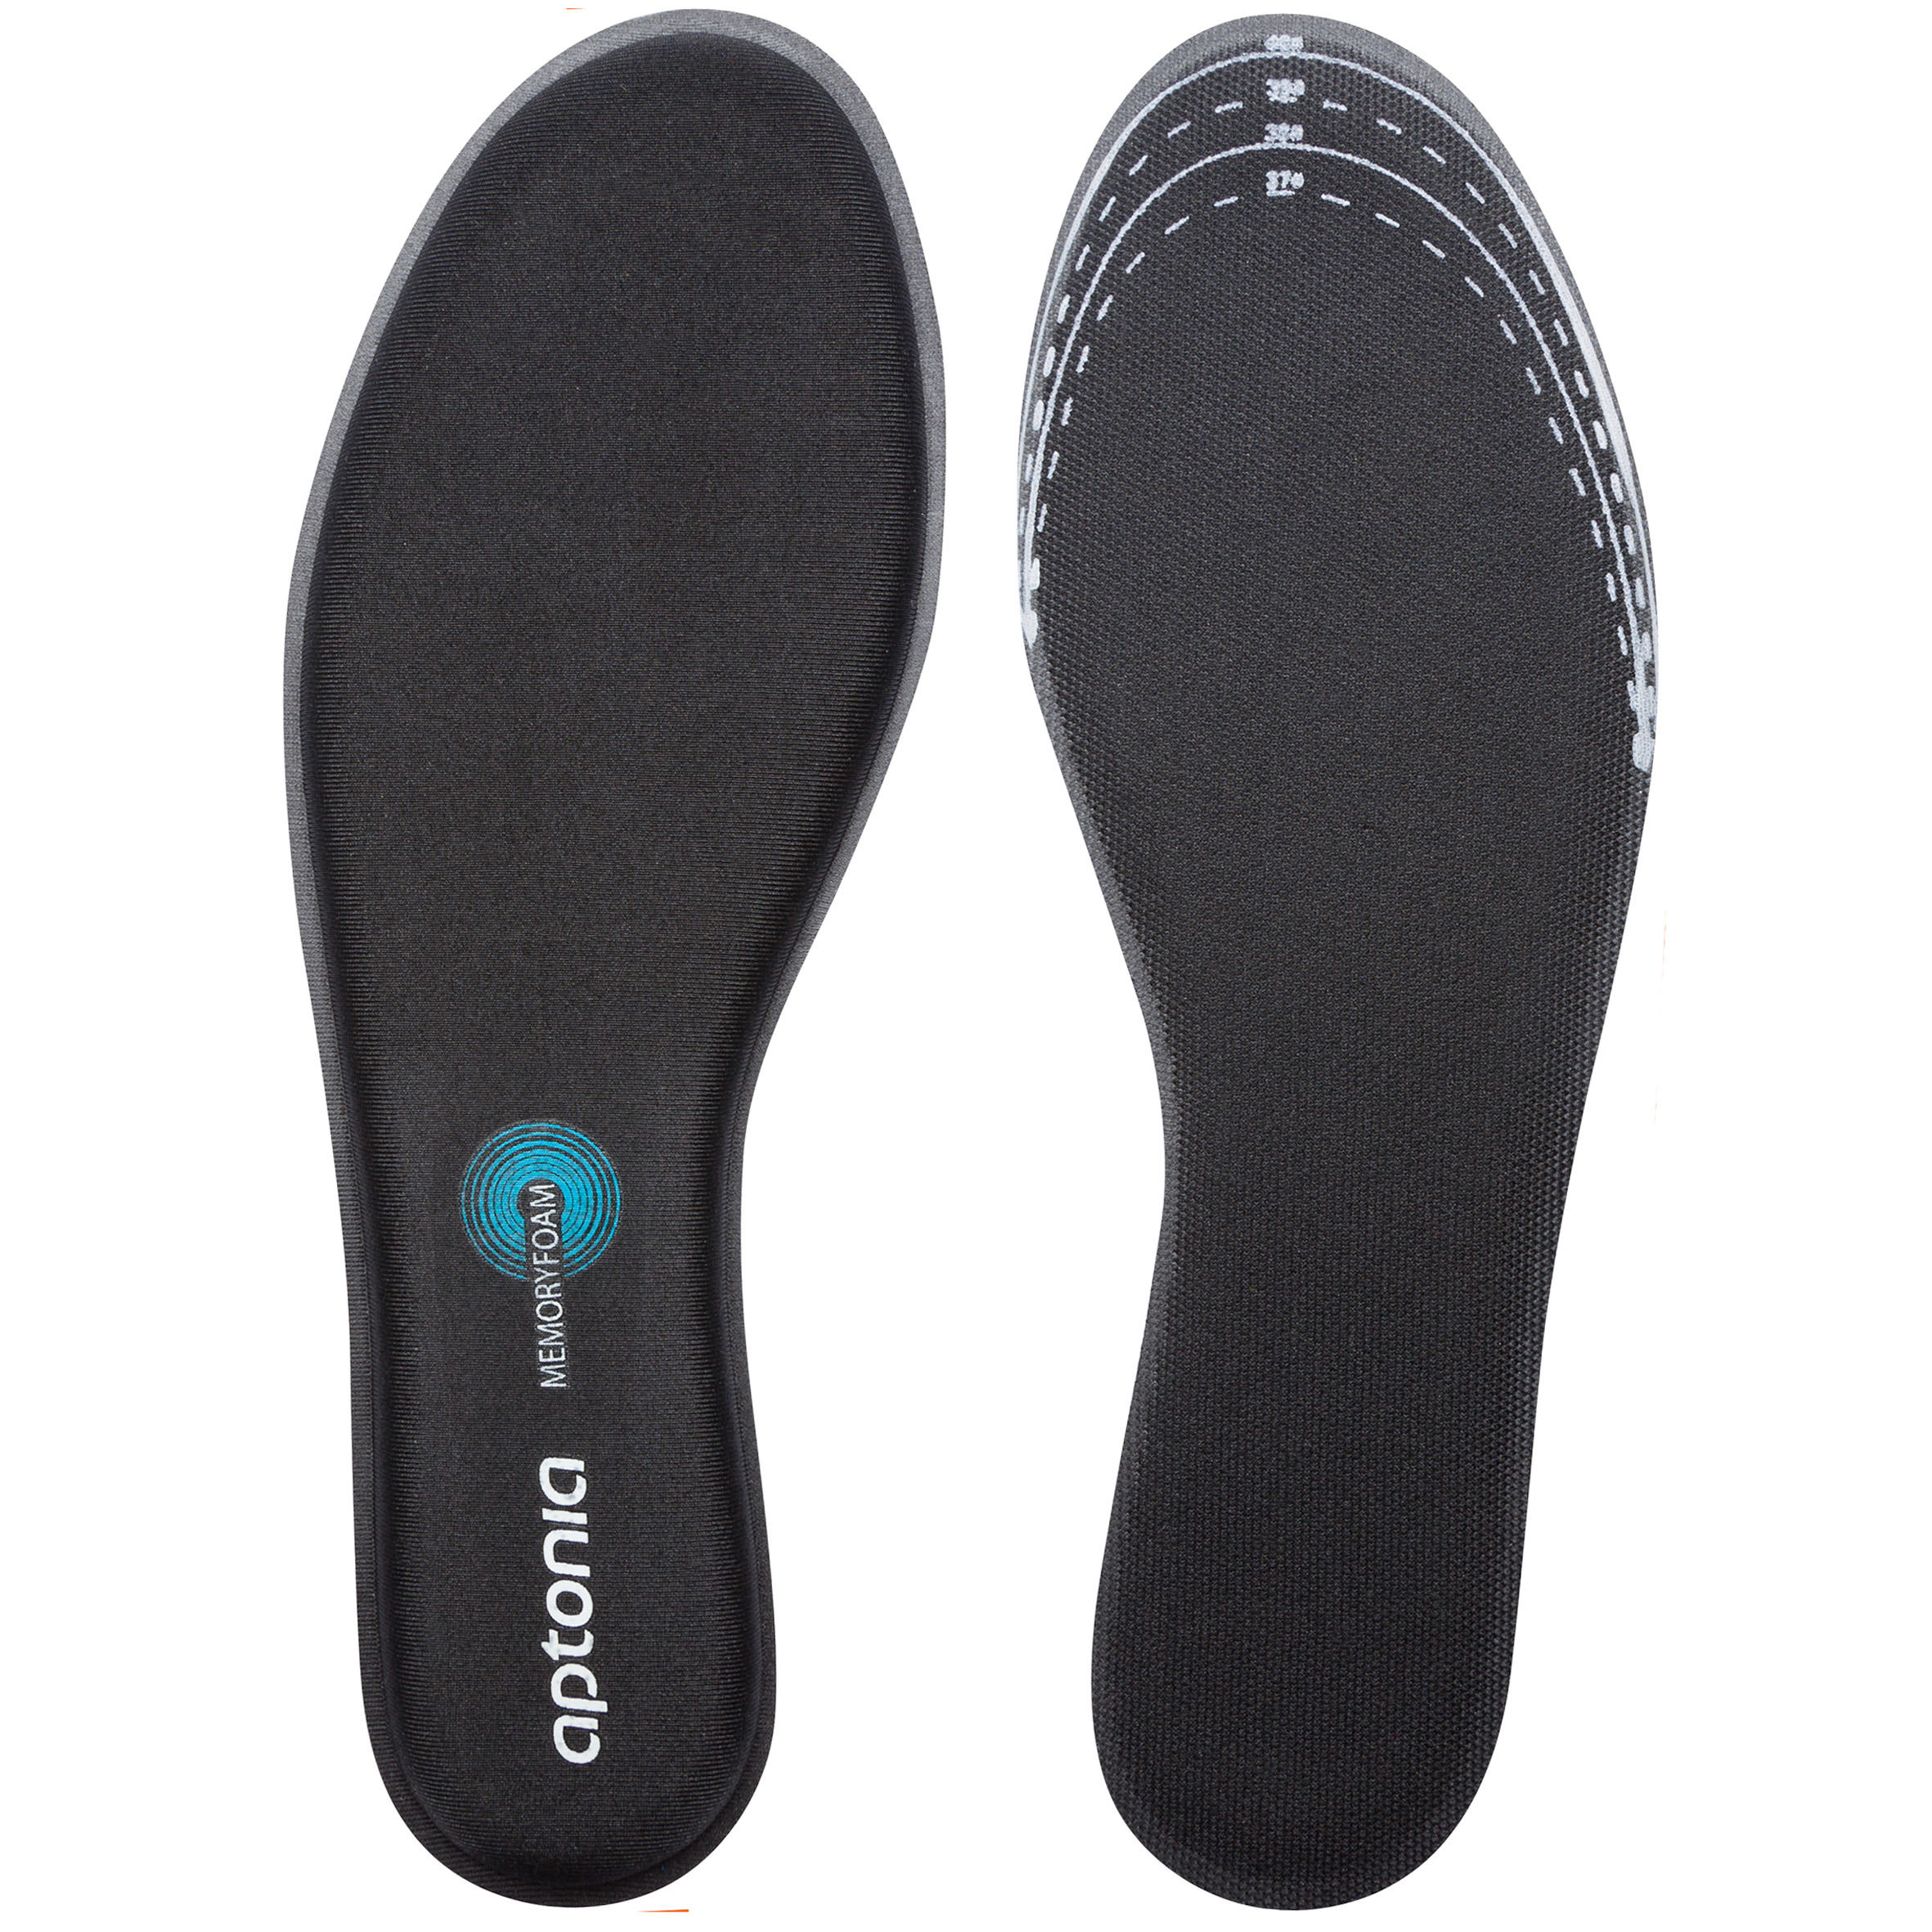 Walk Memory Foam Insoles - Black